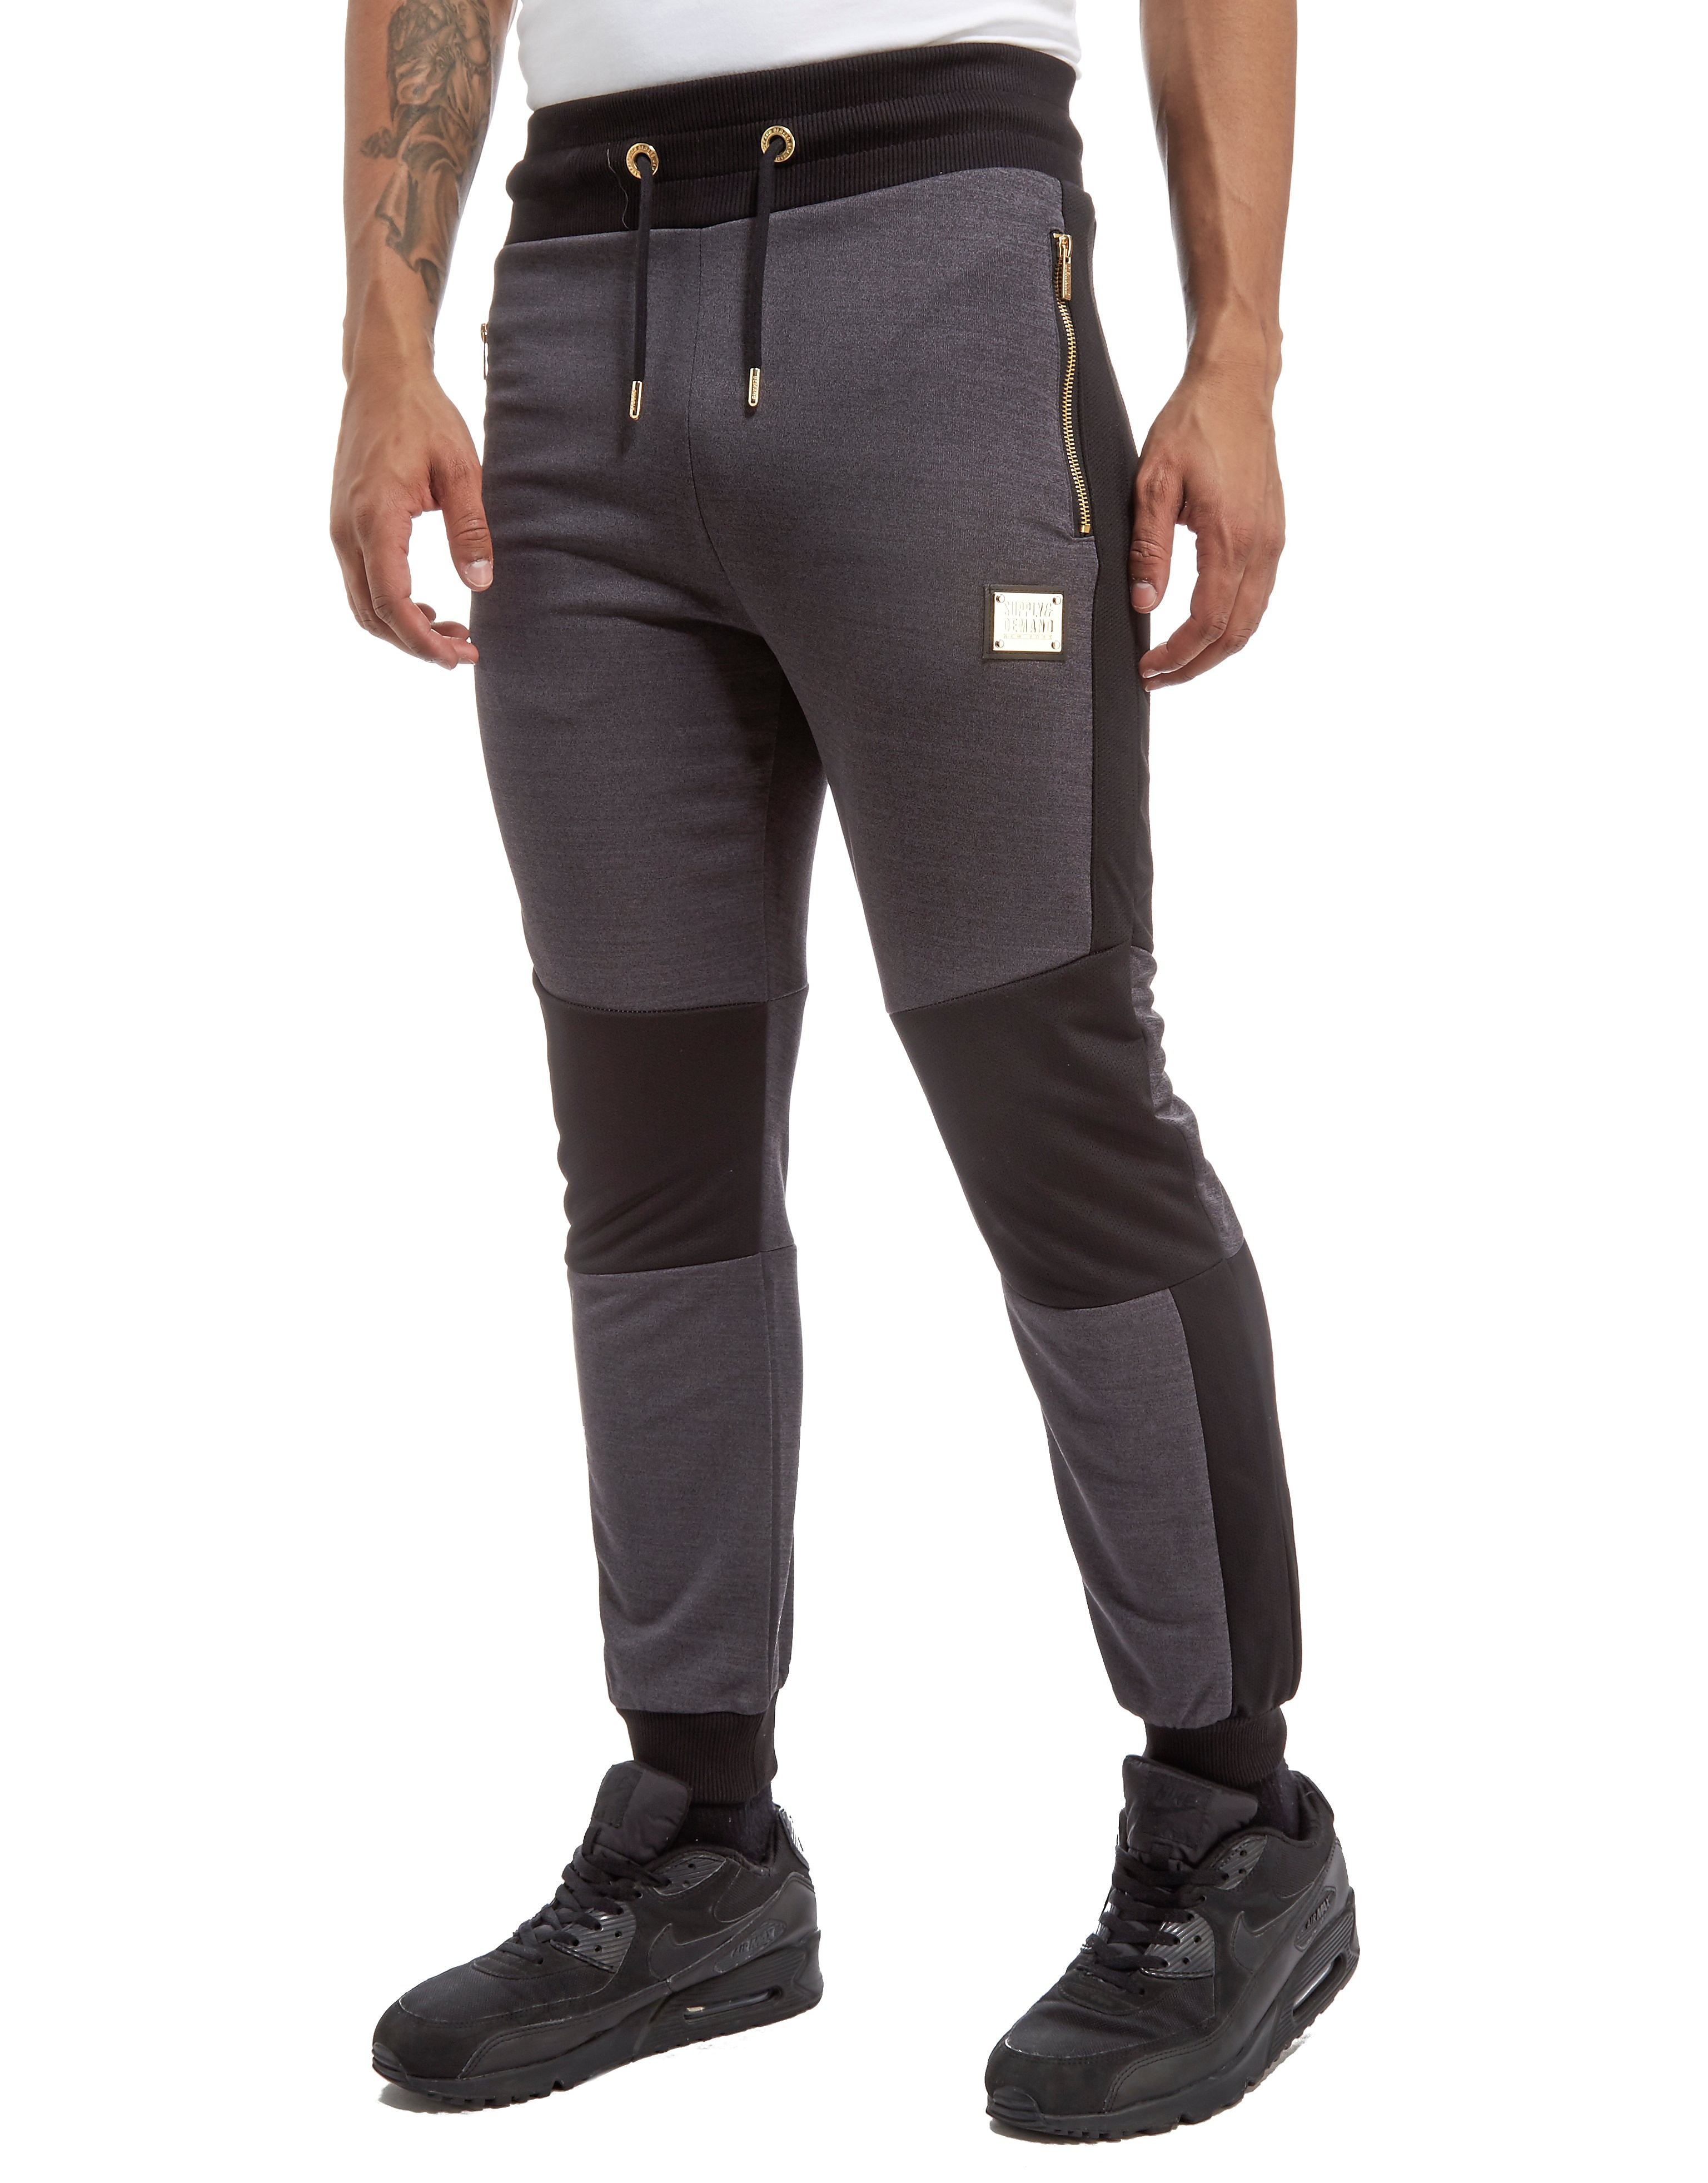 Supply & Demand Magnetic Joggers